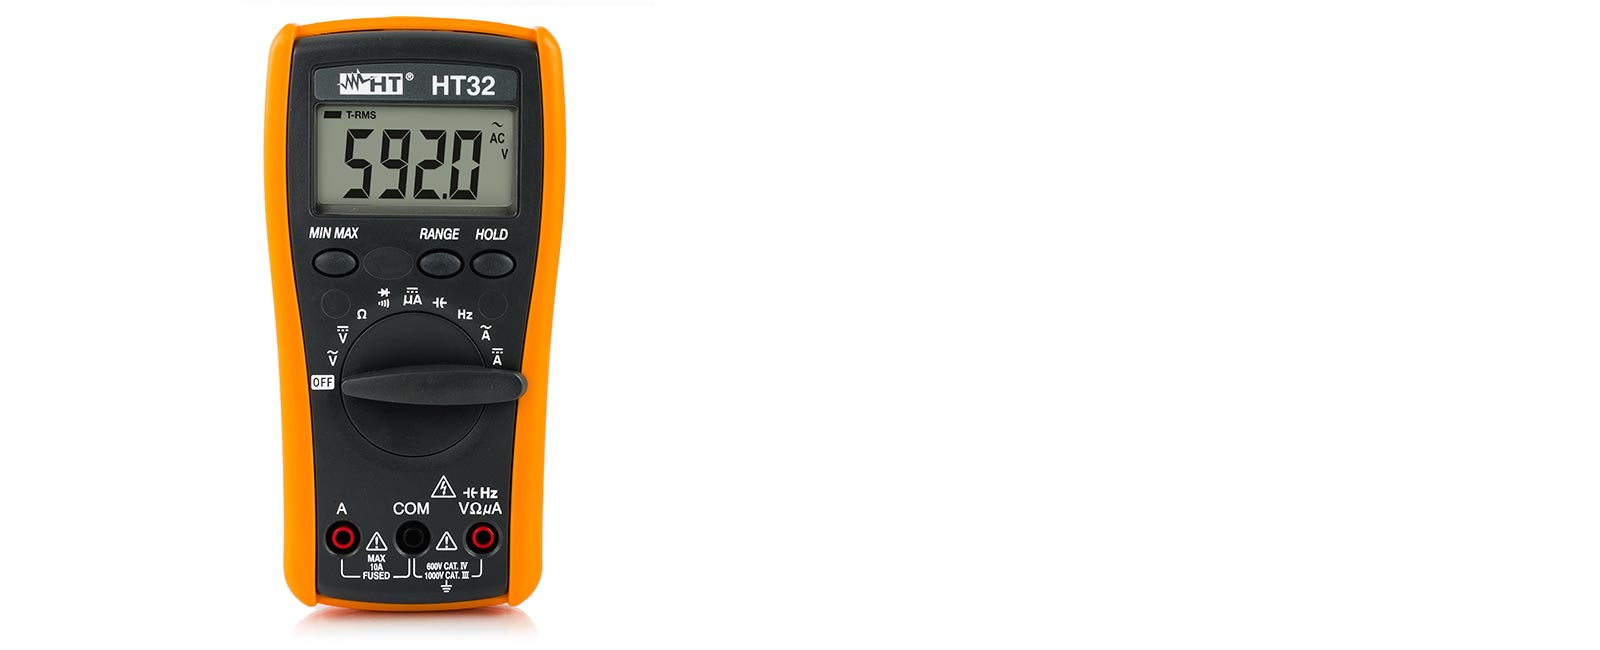 HT32, Digital Multimeters, TRMS